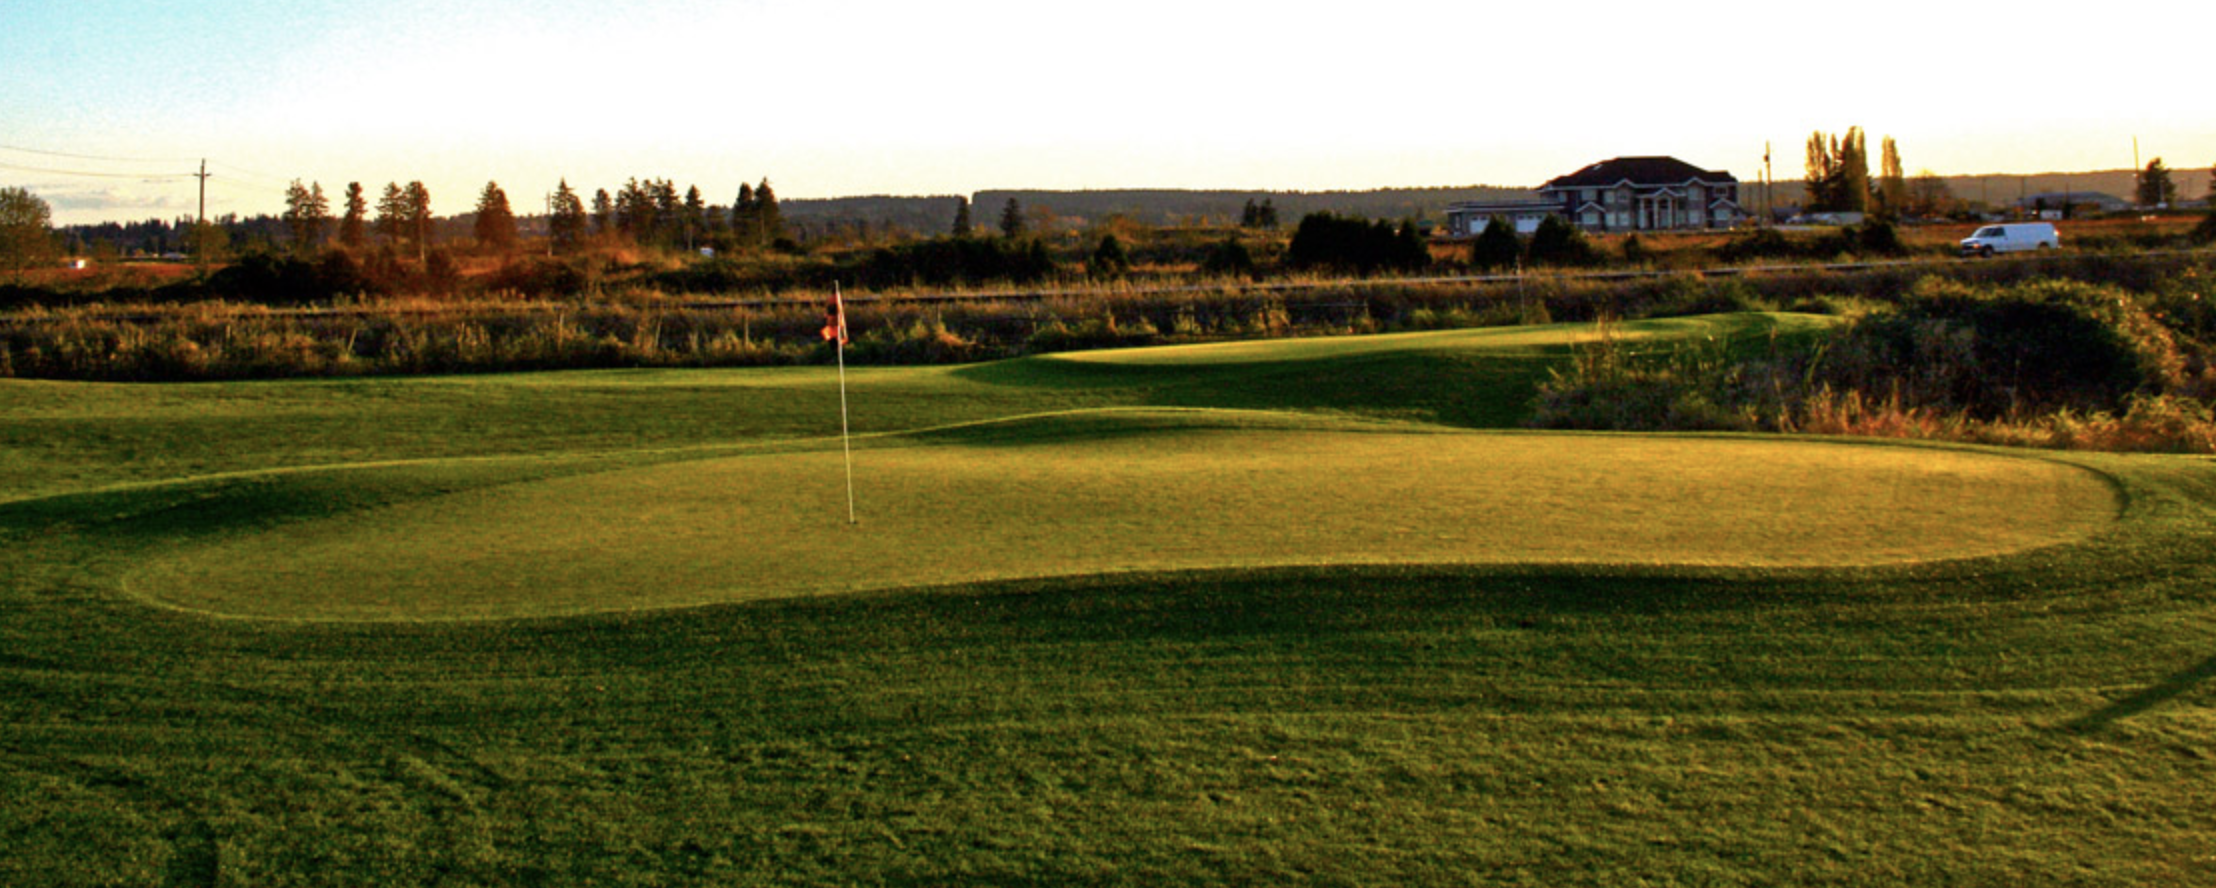 Courts refuse bid to exclude by a Surrey golf course from the ALR